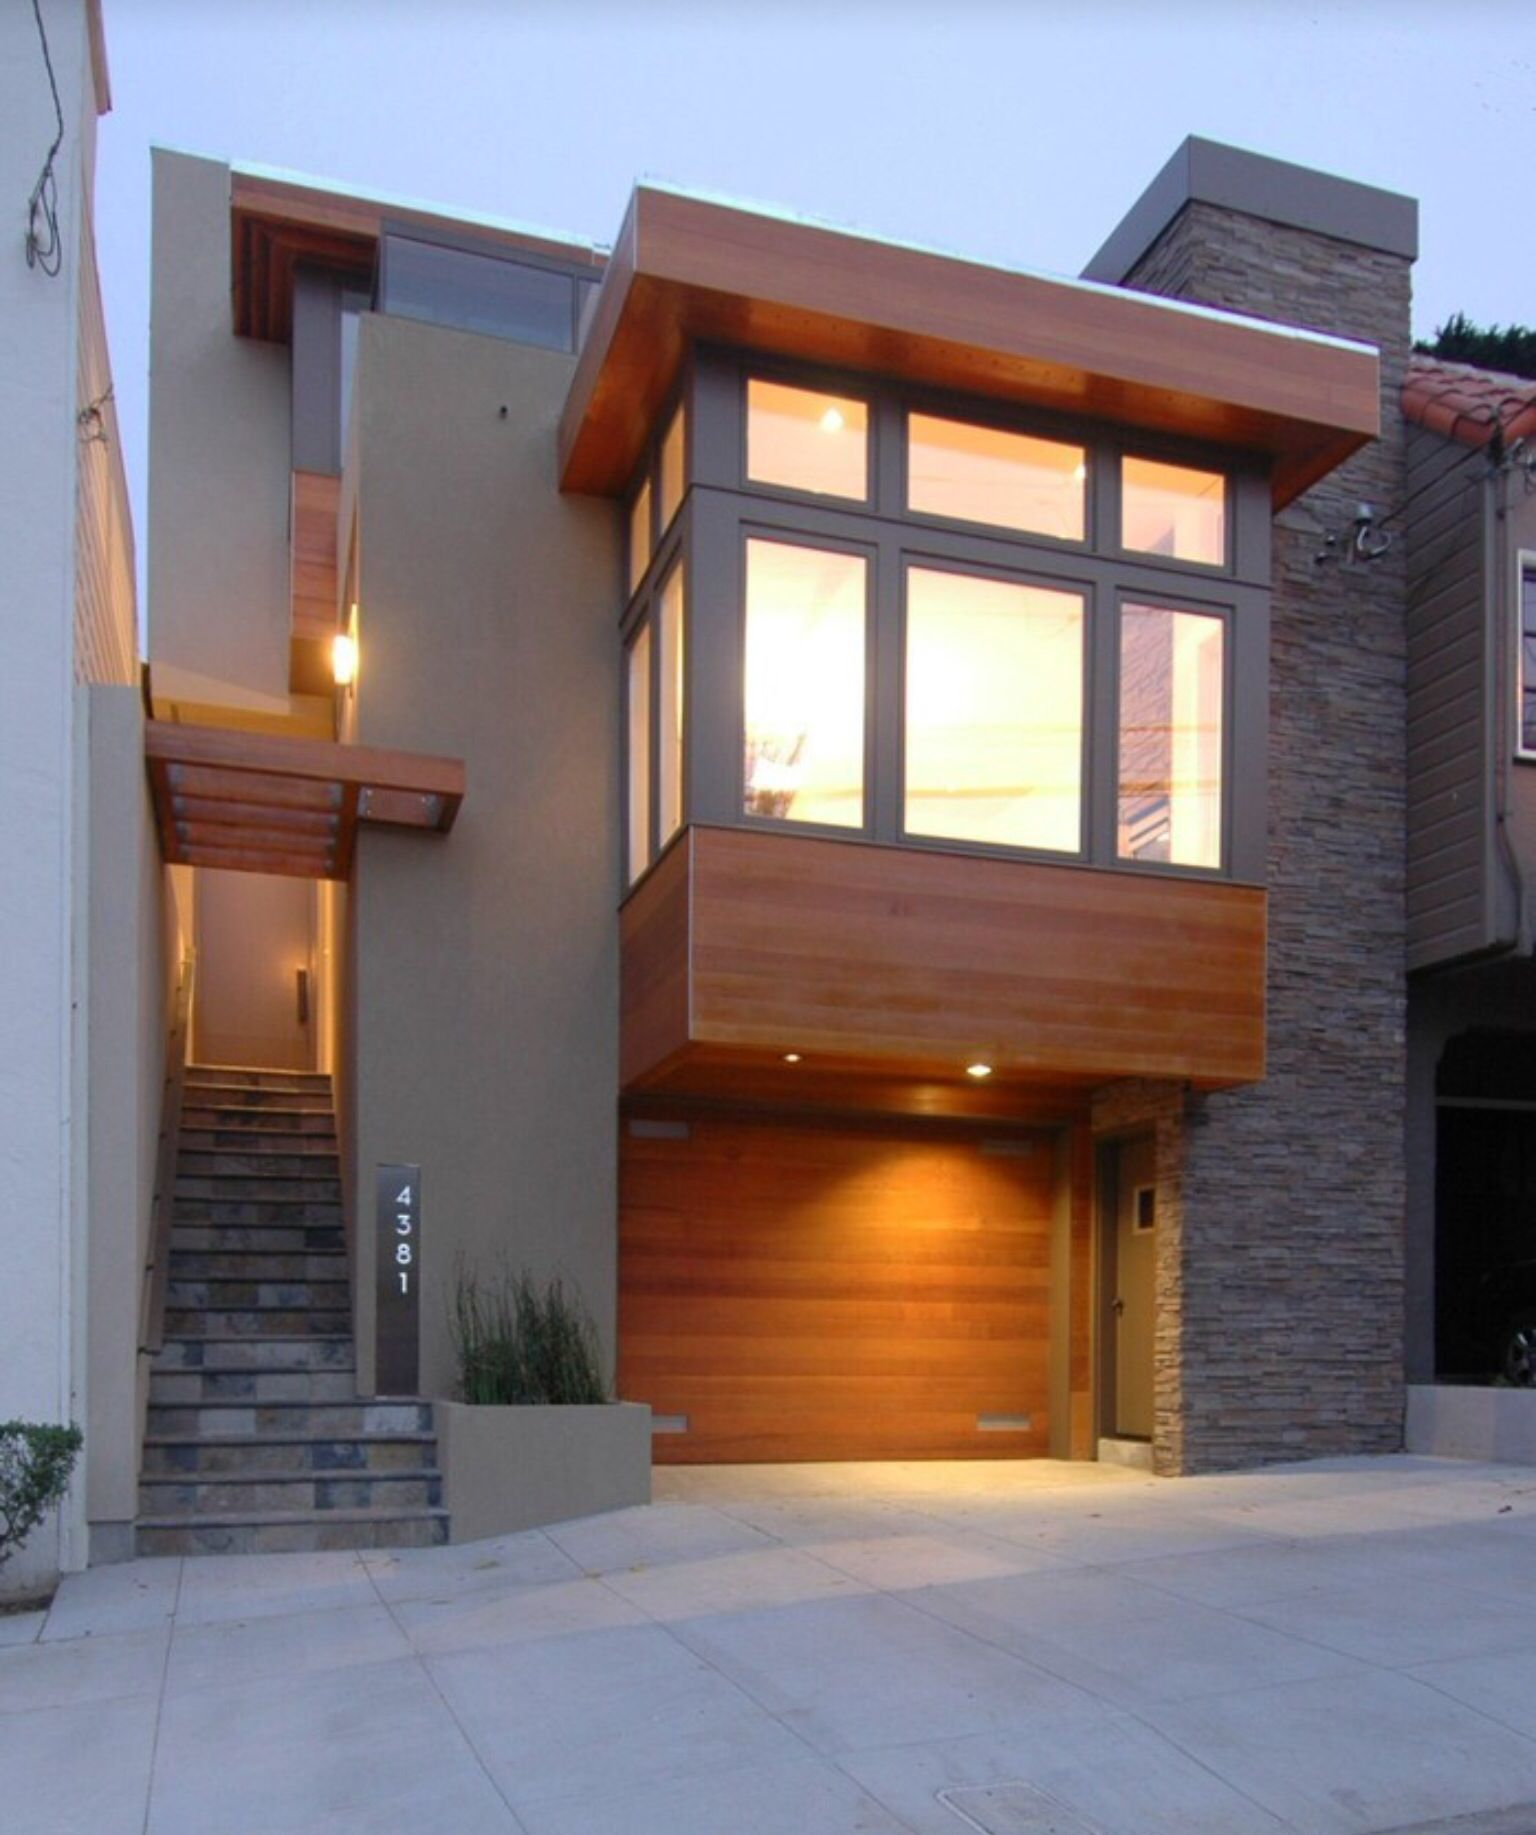 18 Awe Inspiring Modern Home Exterior Designs That Look Casual: House Design, Modern